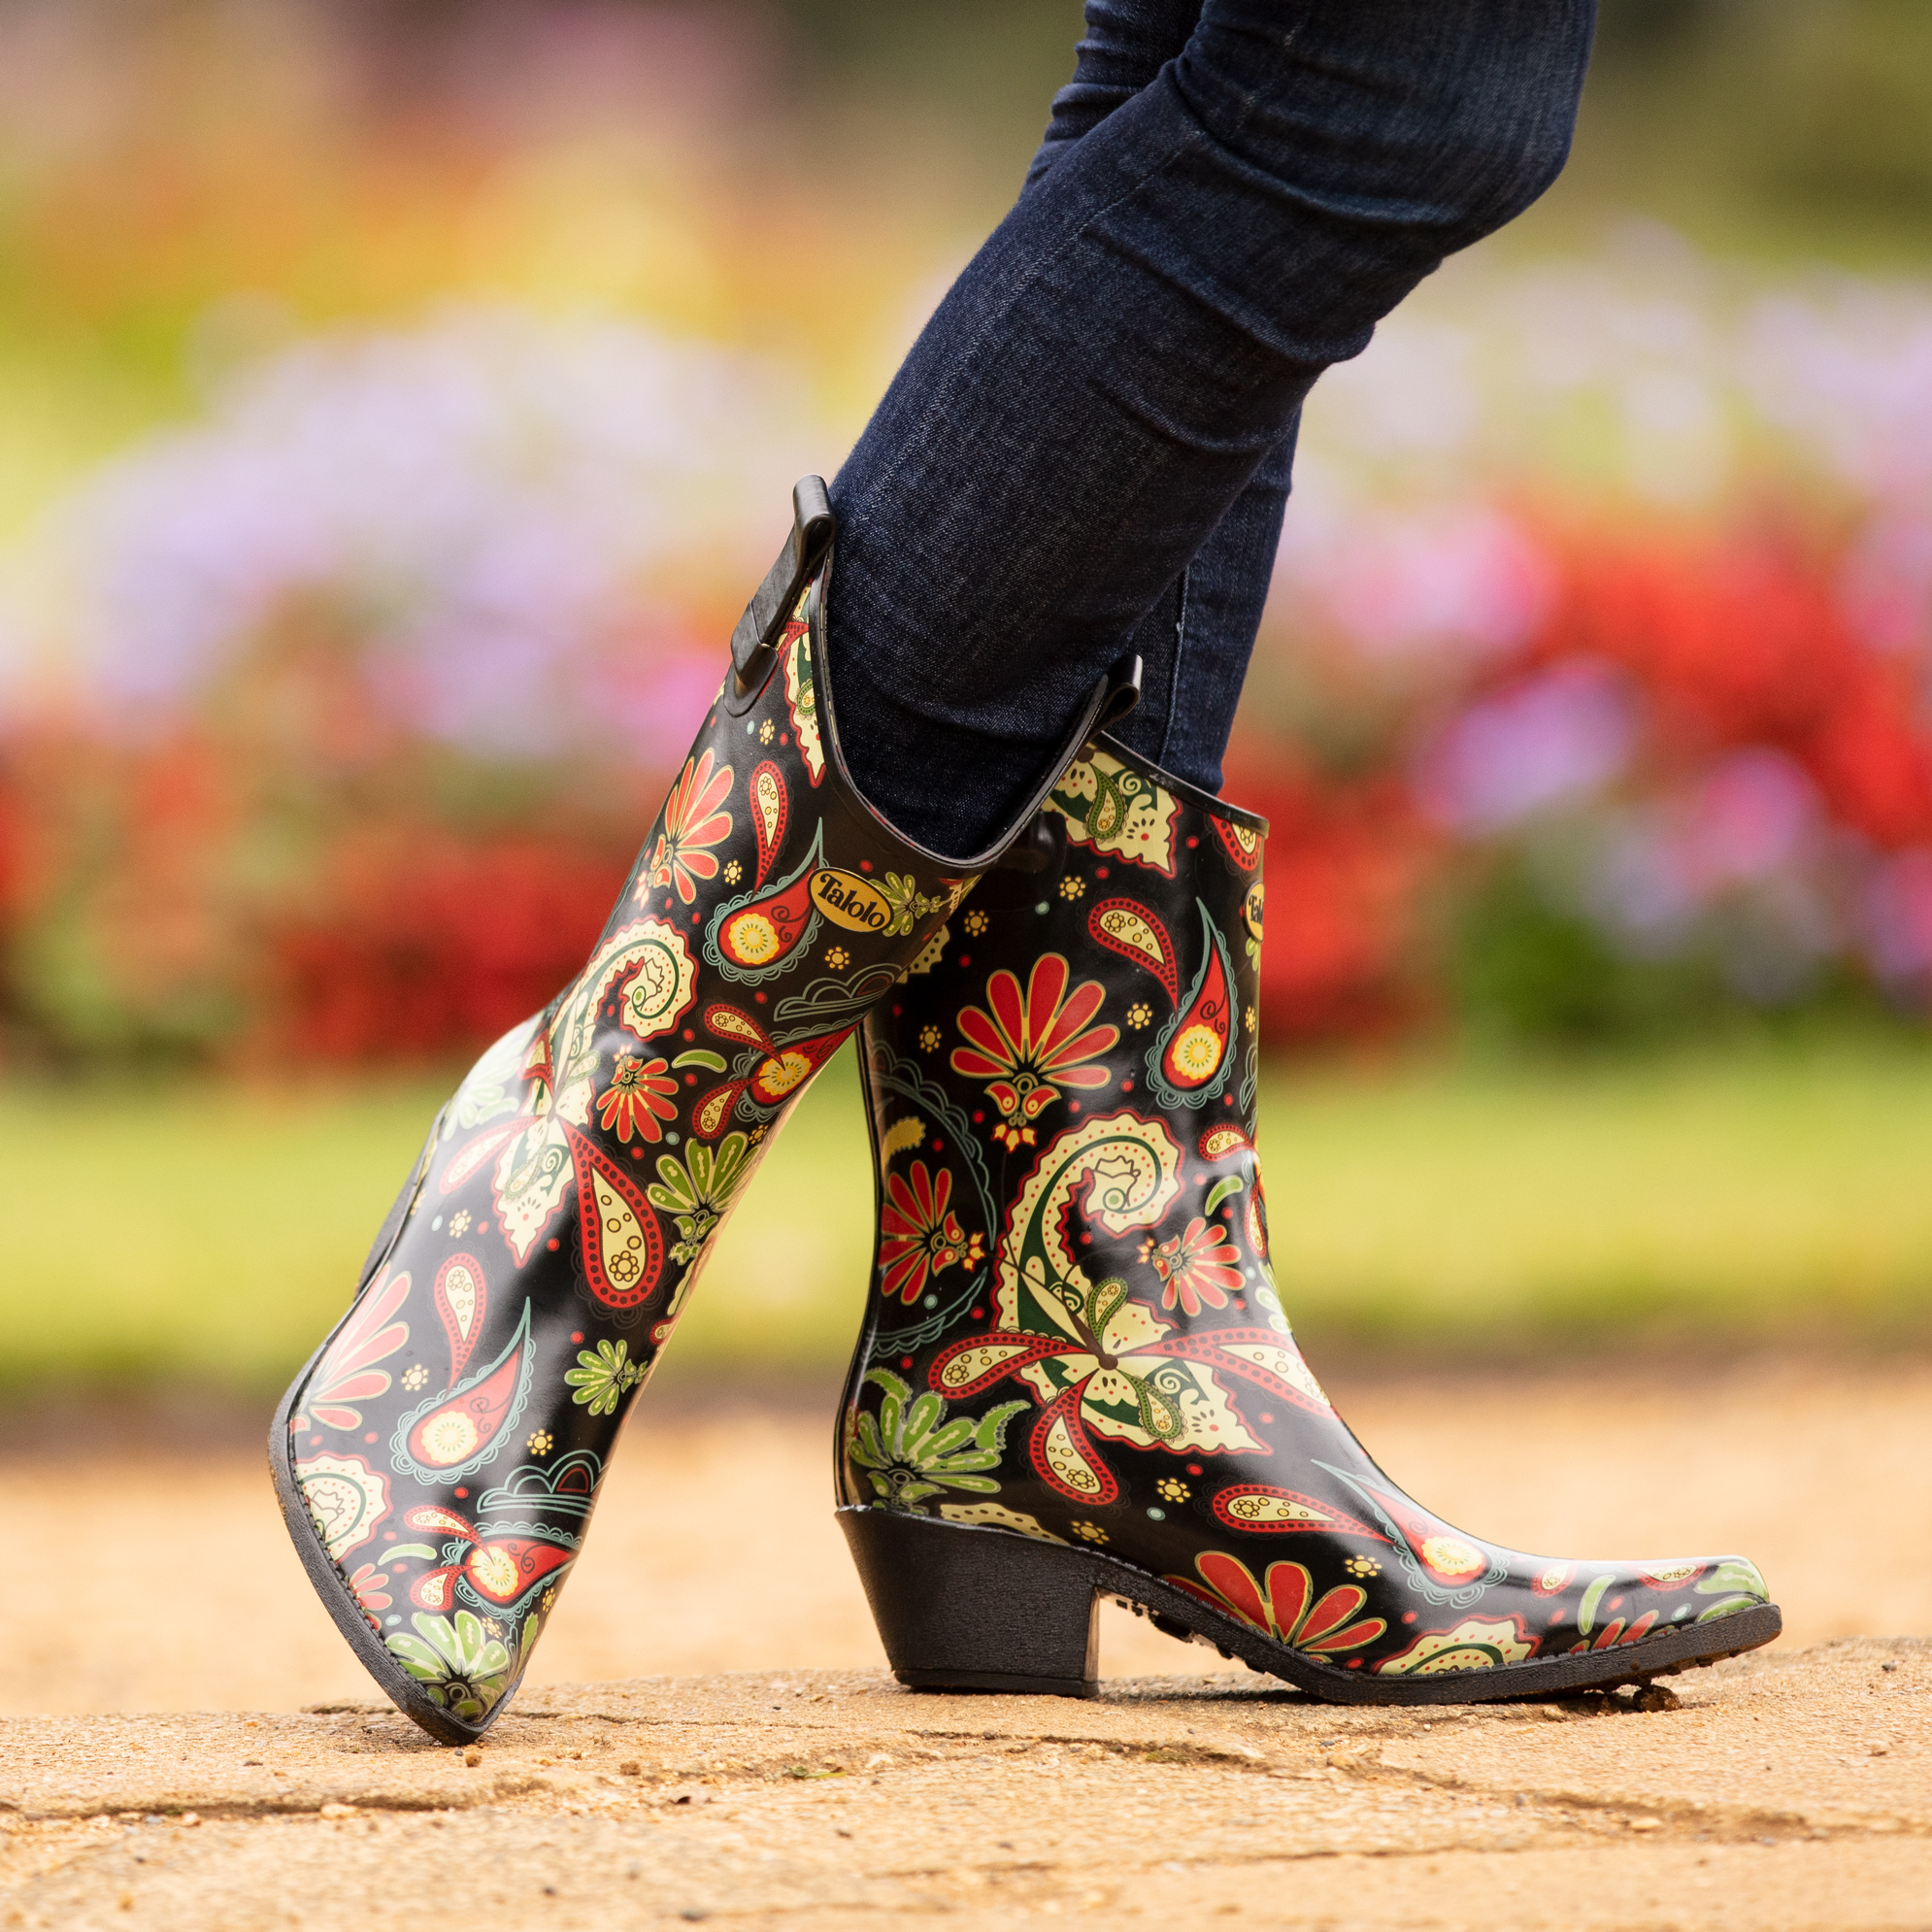 Paisley Vibewelly boot